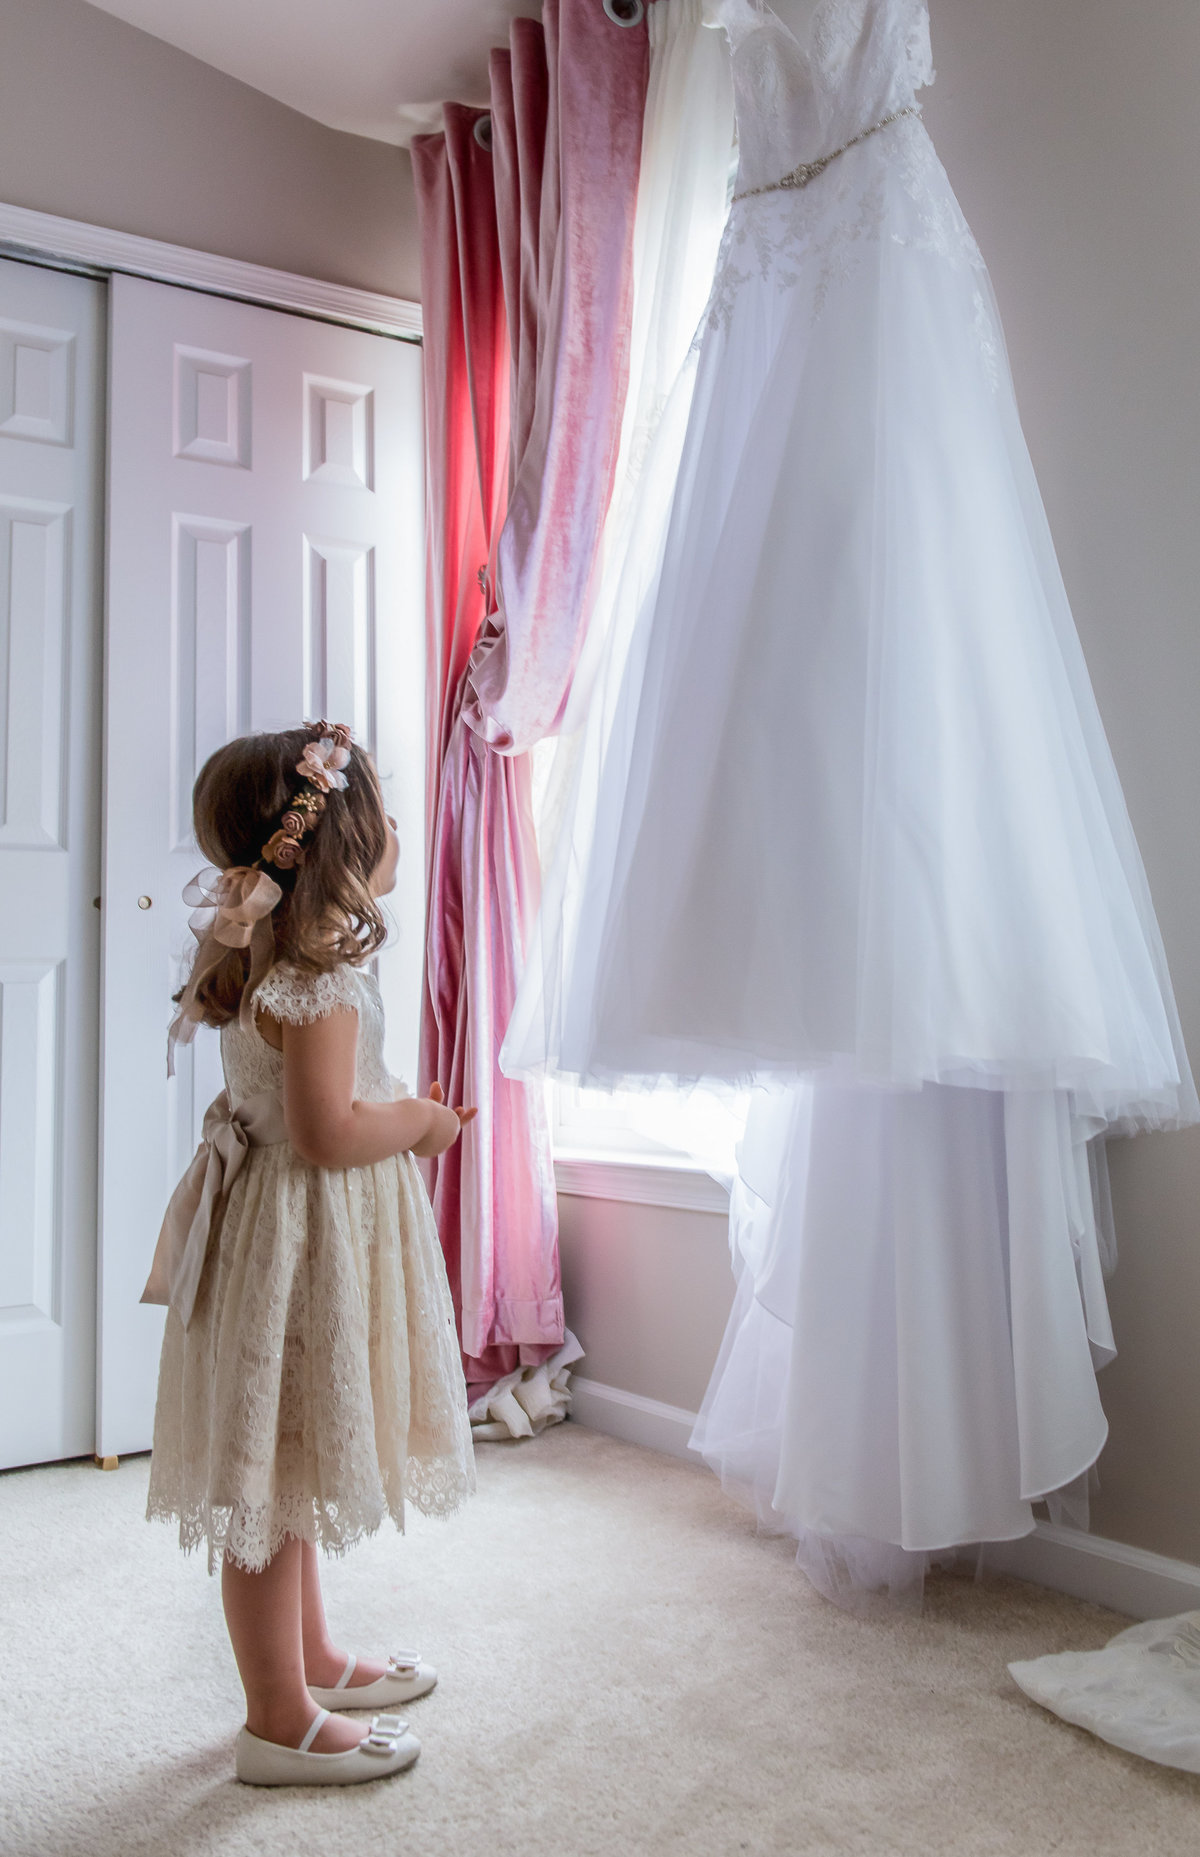 Little Girl looking at wedding dress